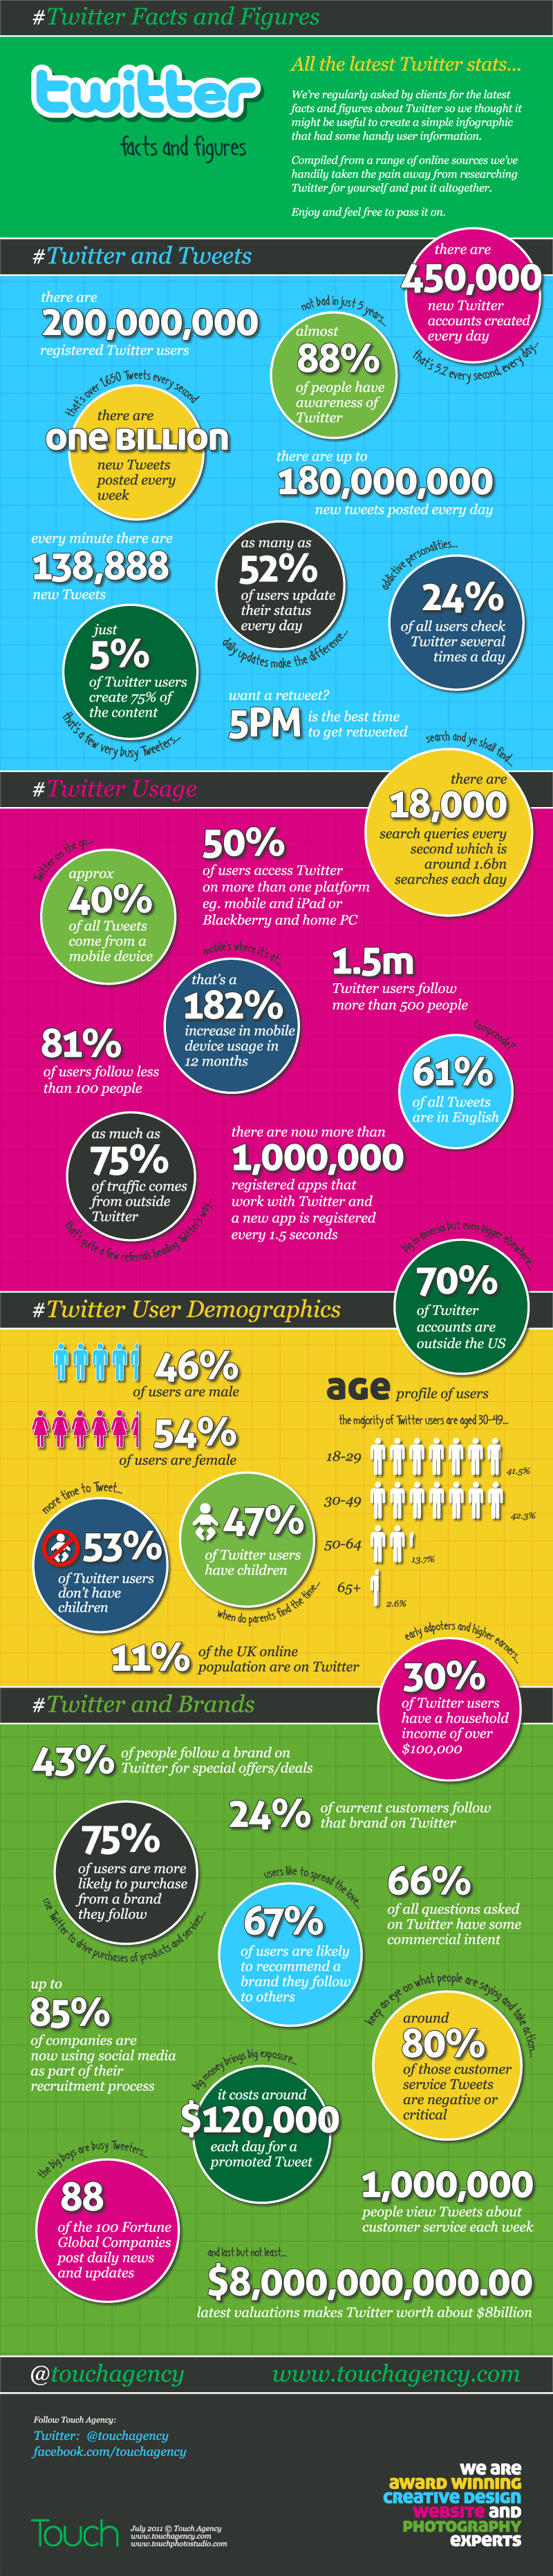 Twitter intresting facts and figures